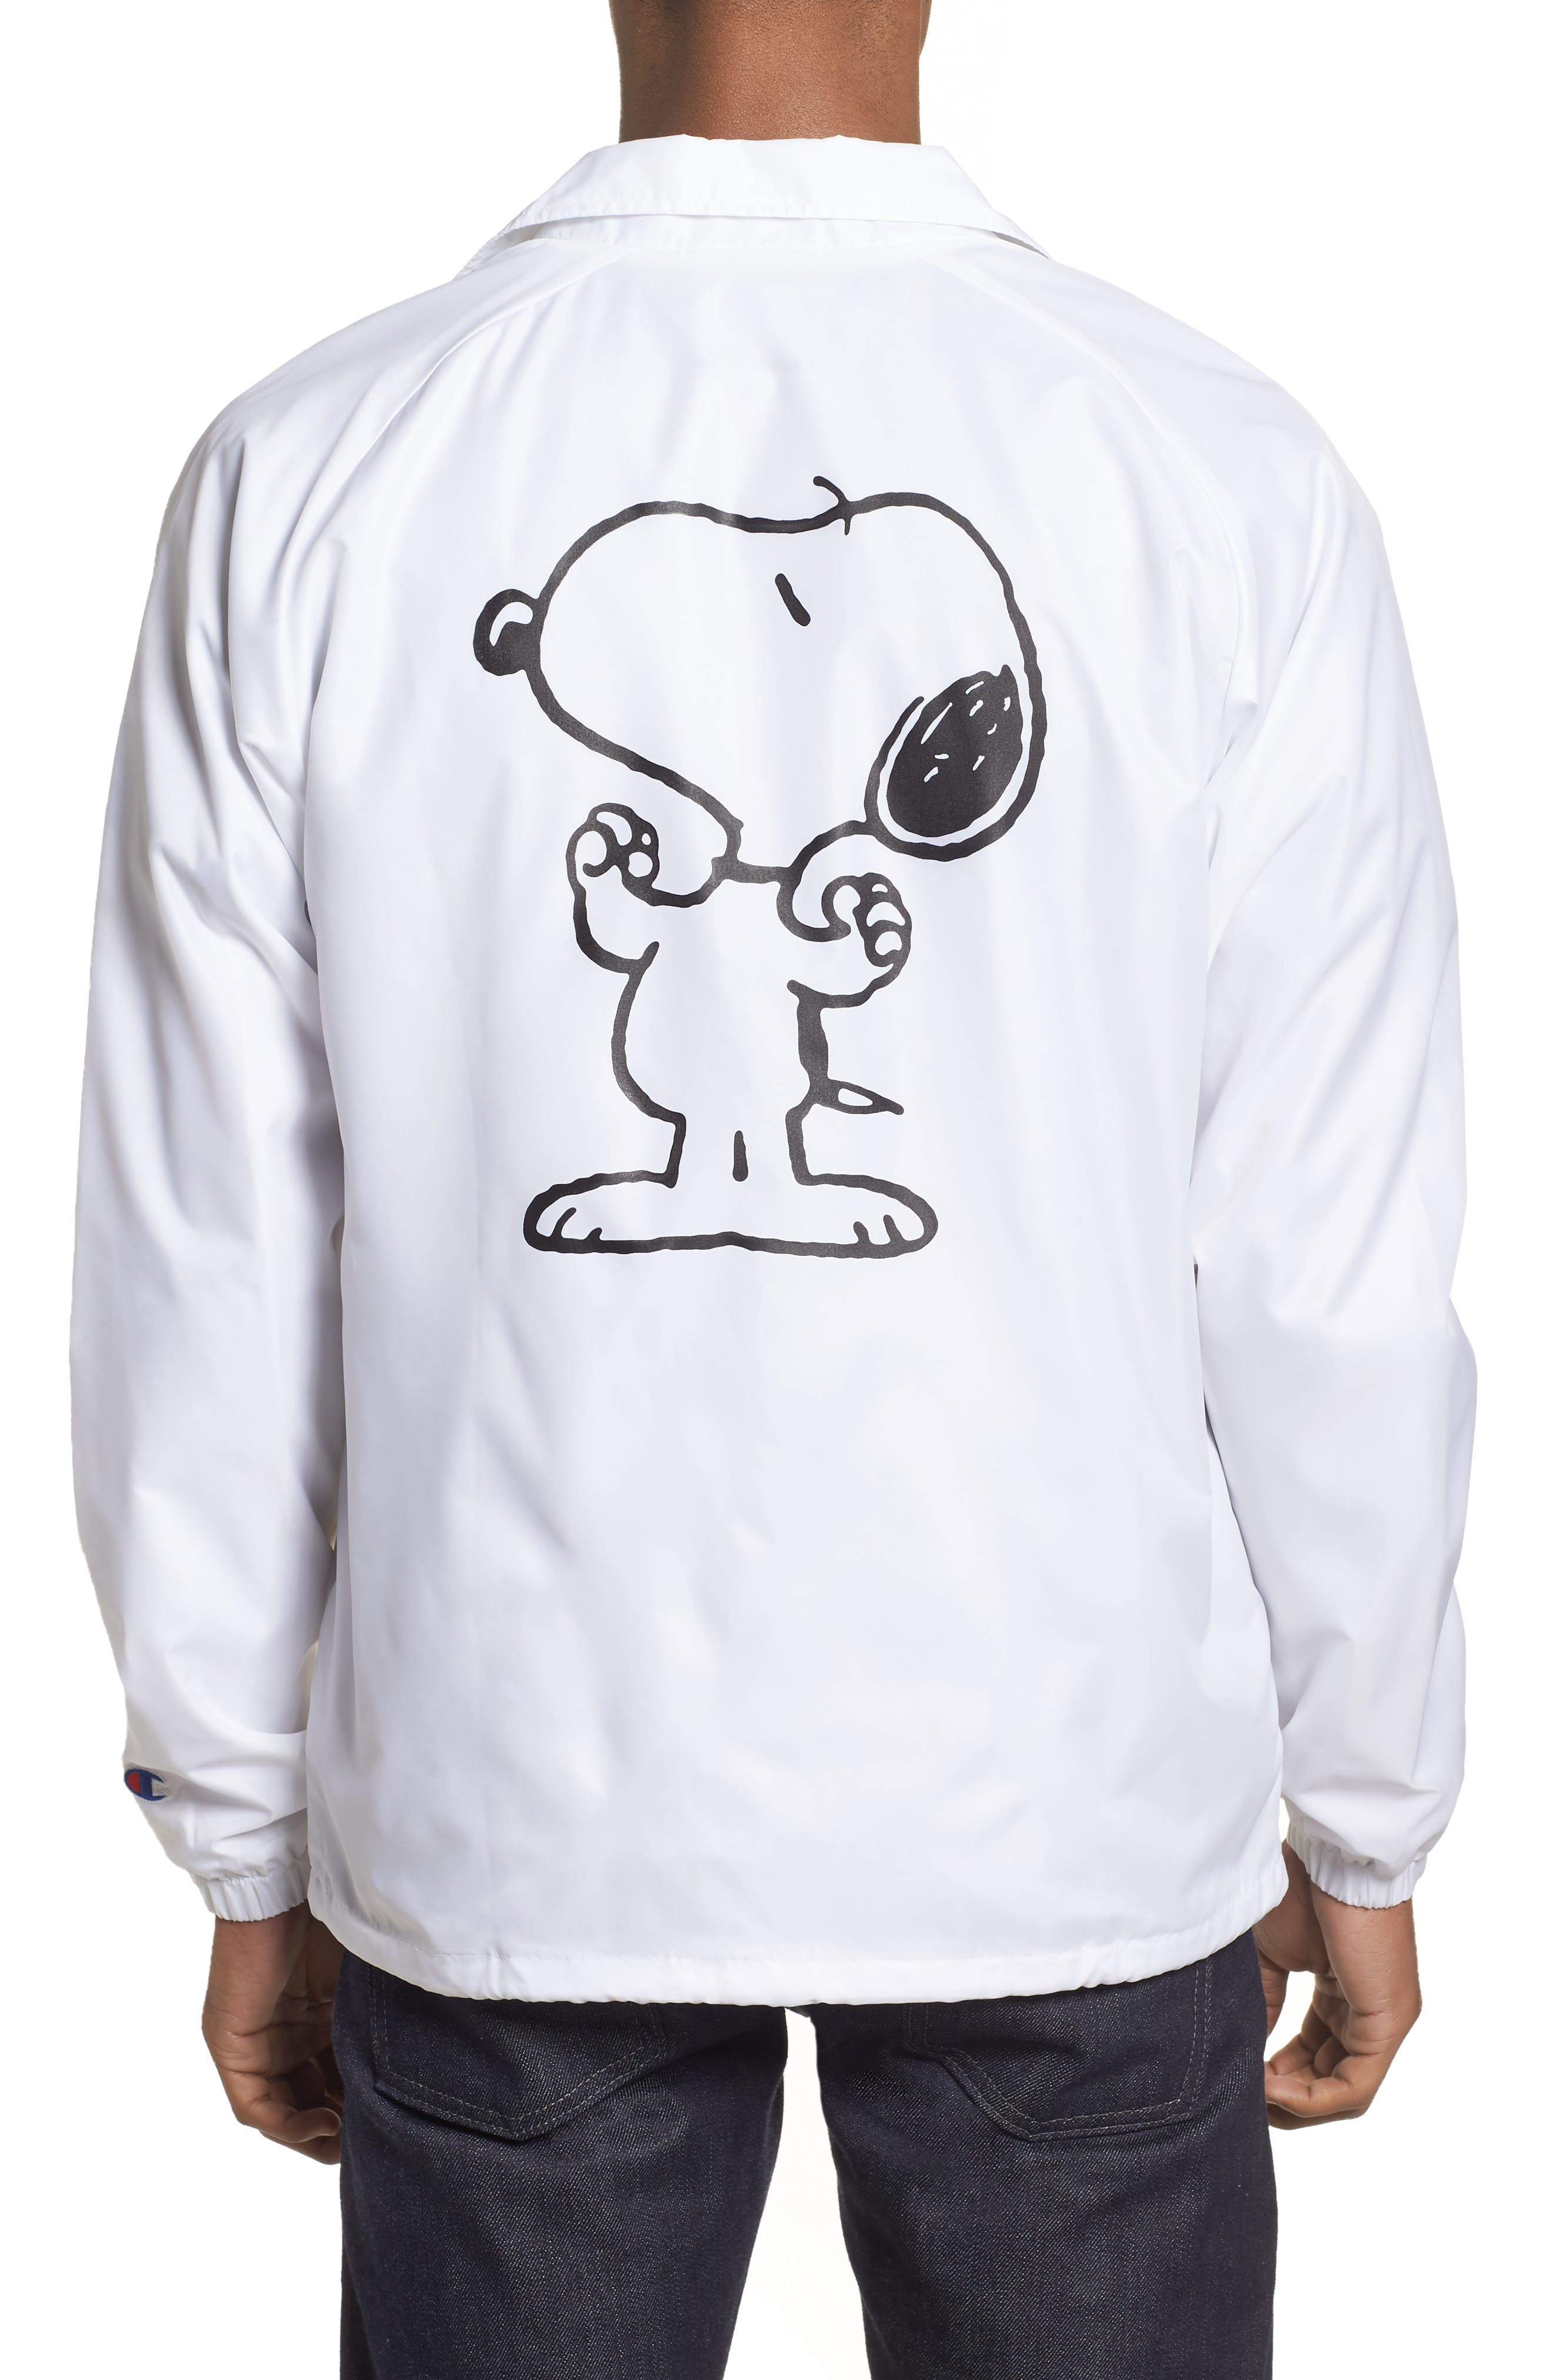 Snoopy Unisex Coach's Jacket,                         Main,                         color, White